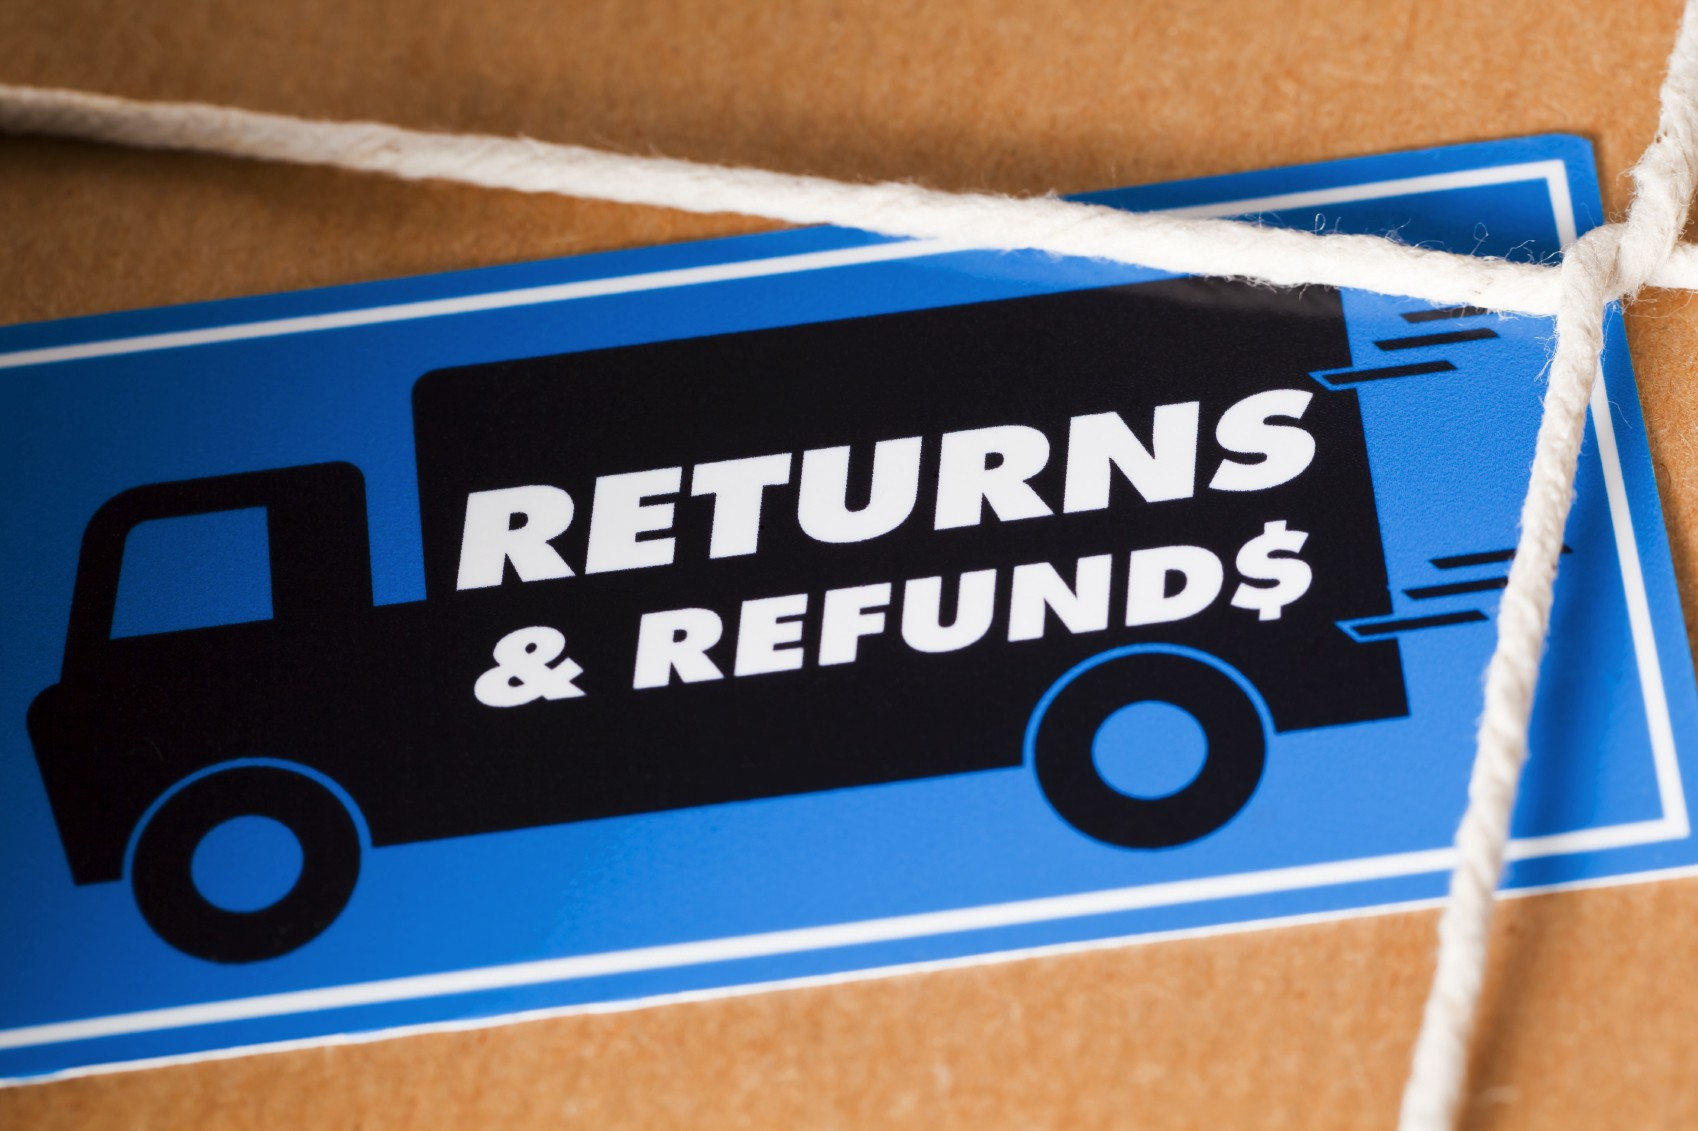 Customer About the Return Policy